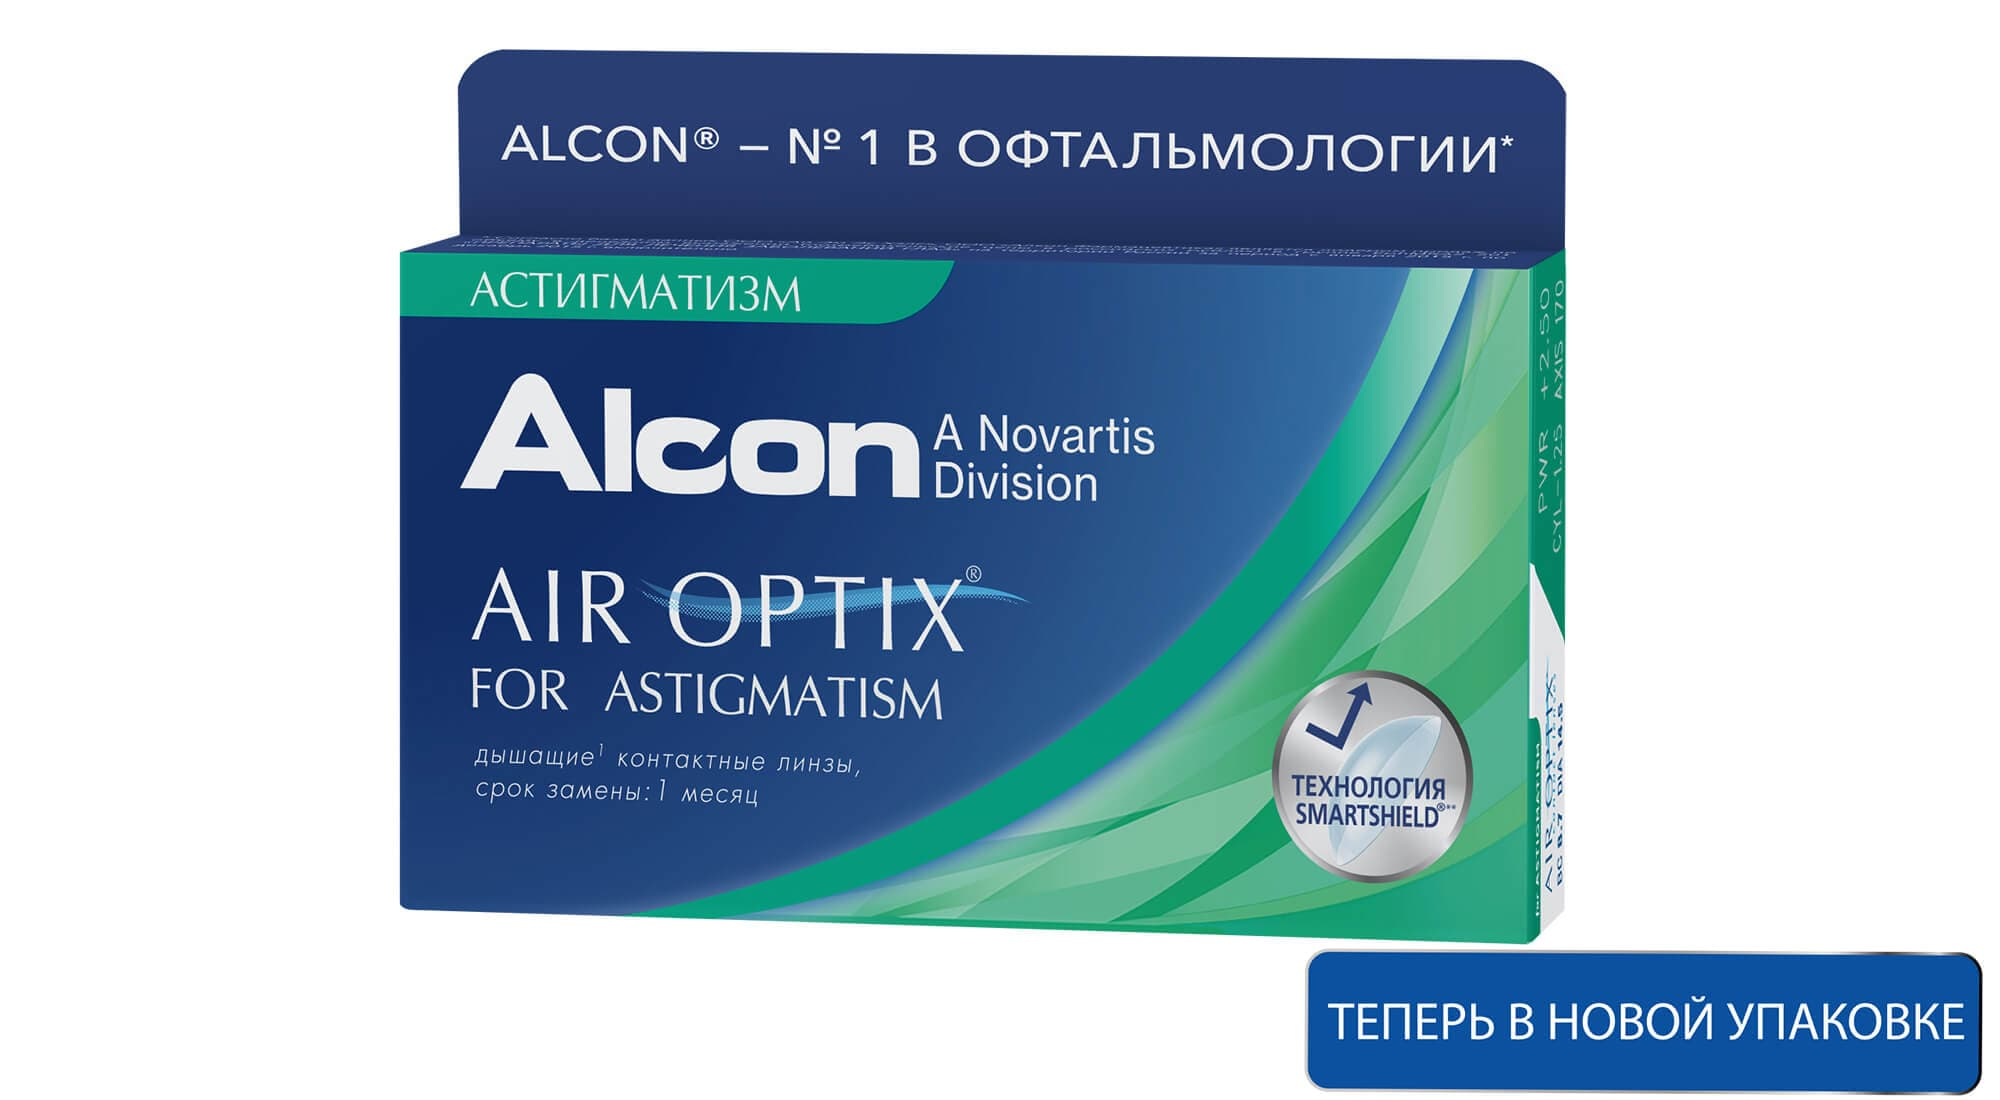 Контактные линзы AIR Optix for Astigmatism (3 линзы)